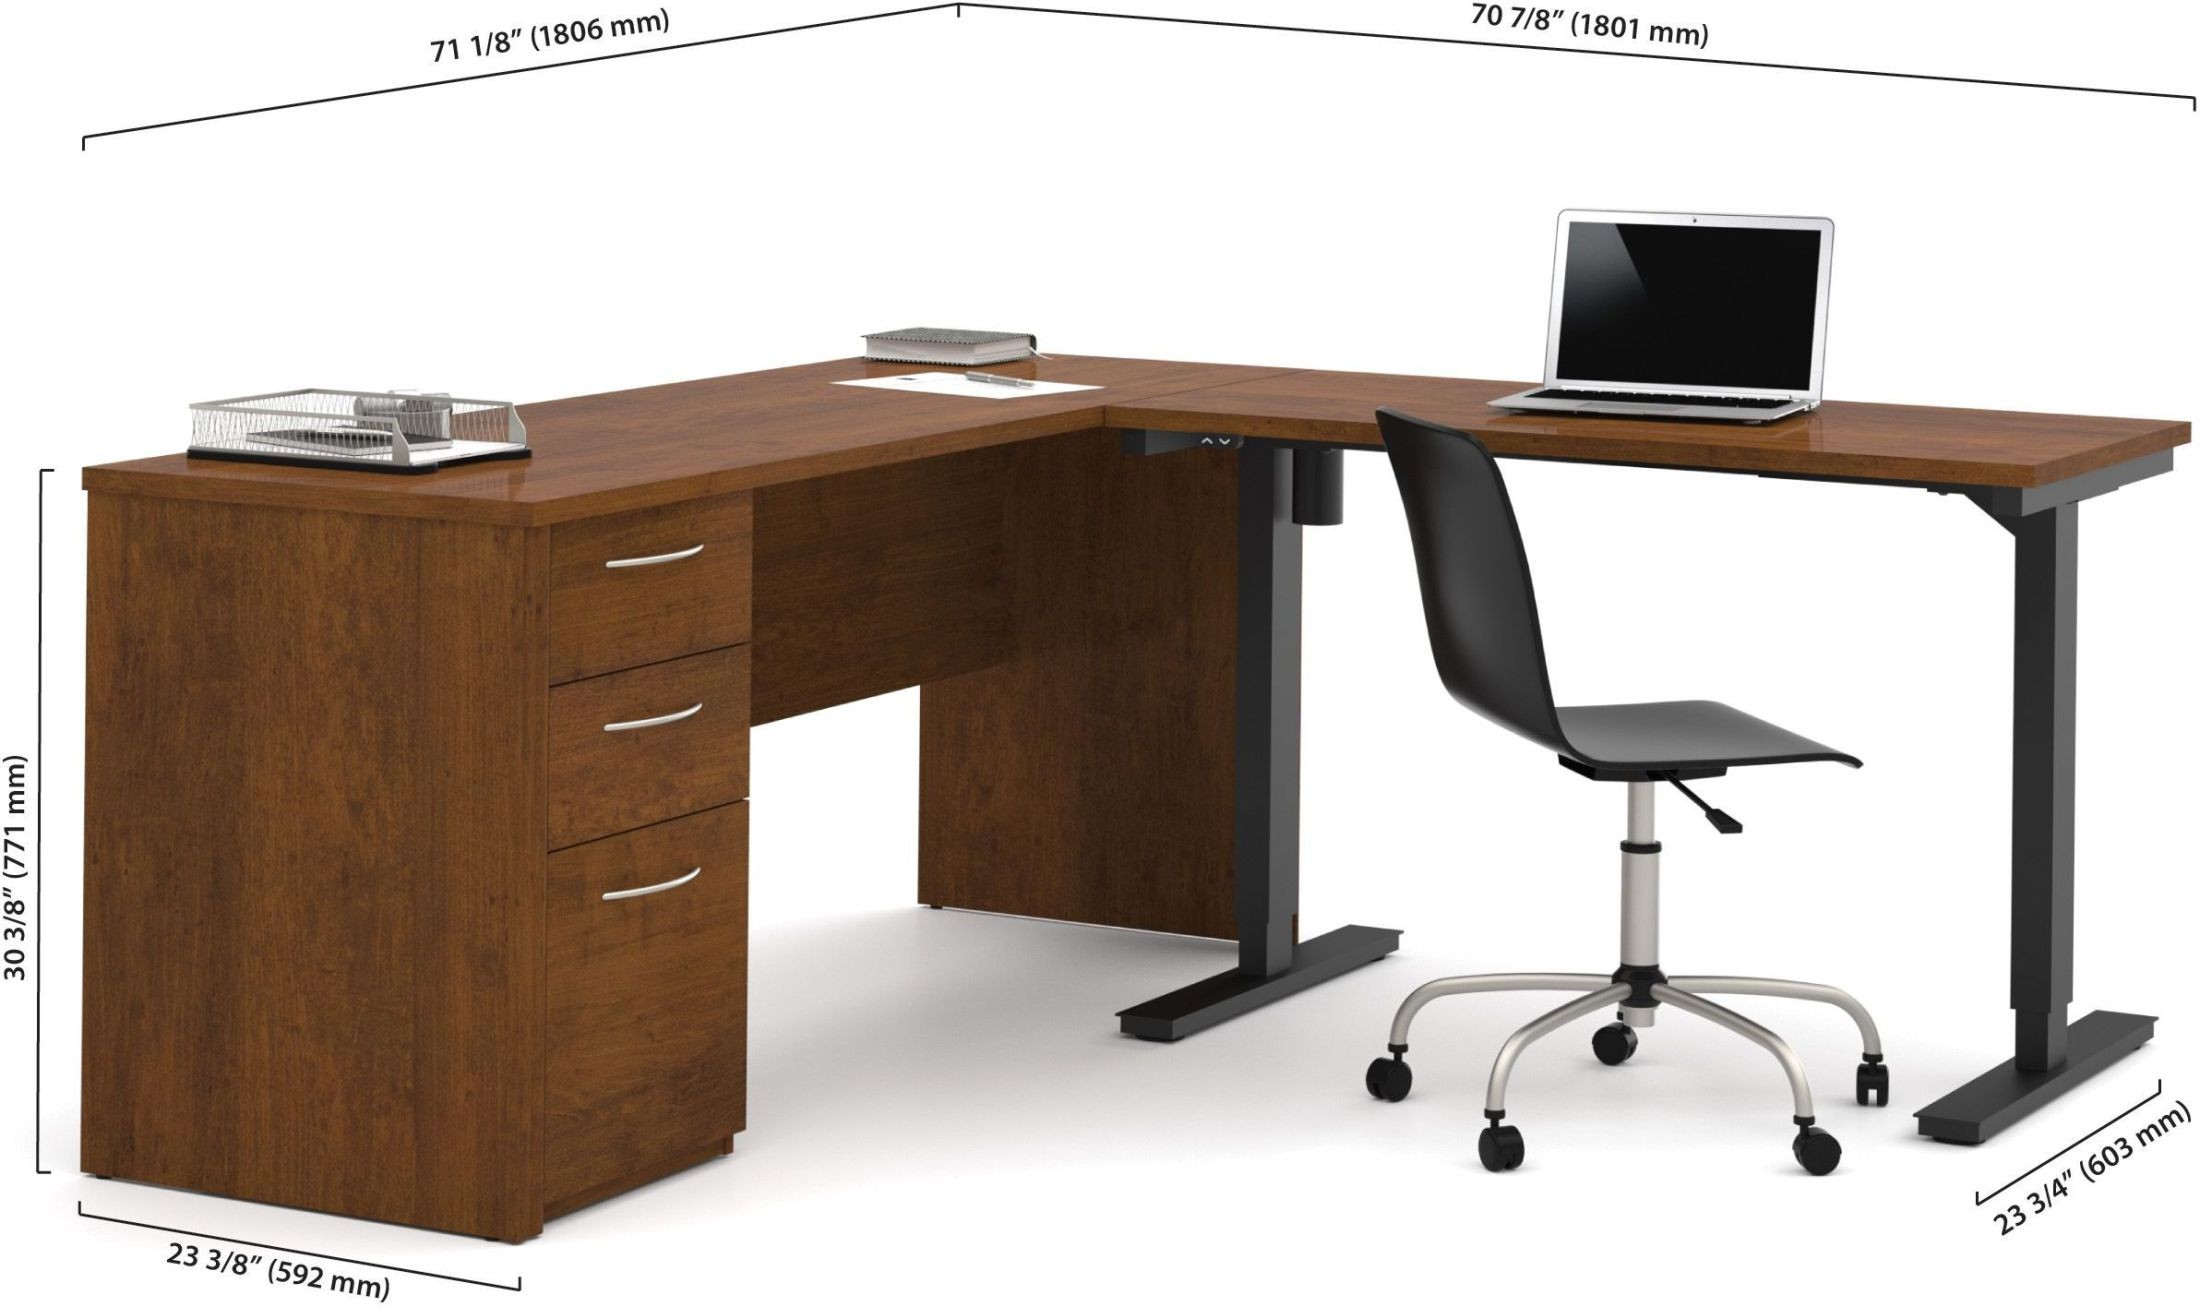 ... Embassy Tuscany Brown L Desk With Electric Adjustable Height Table  Media Gallery 1 ...